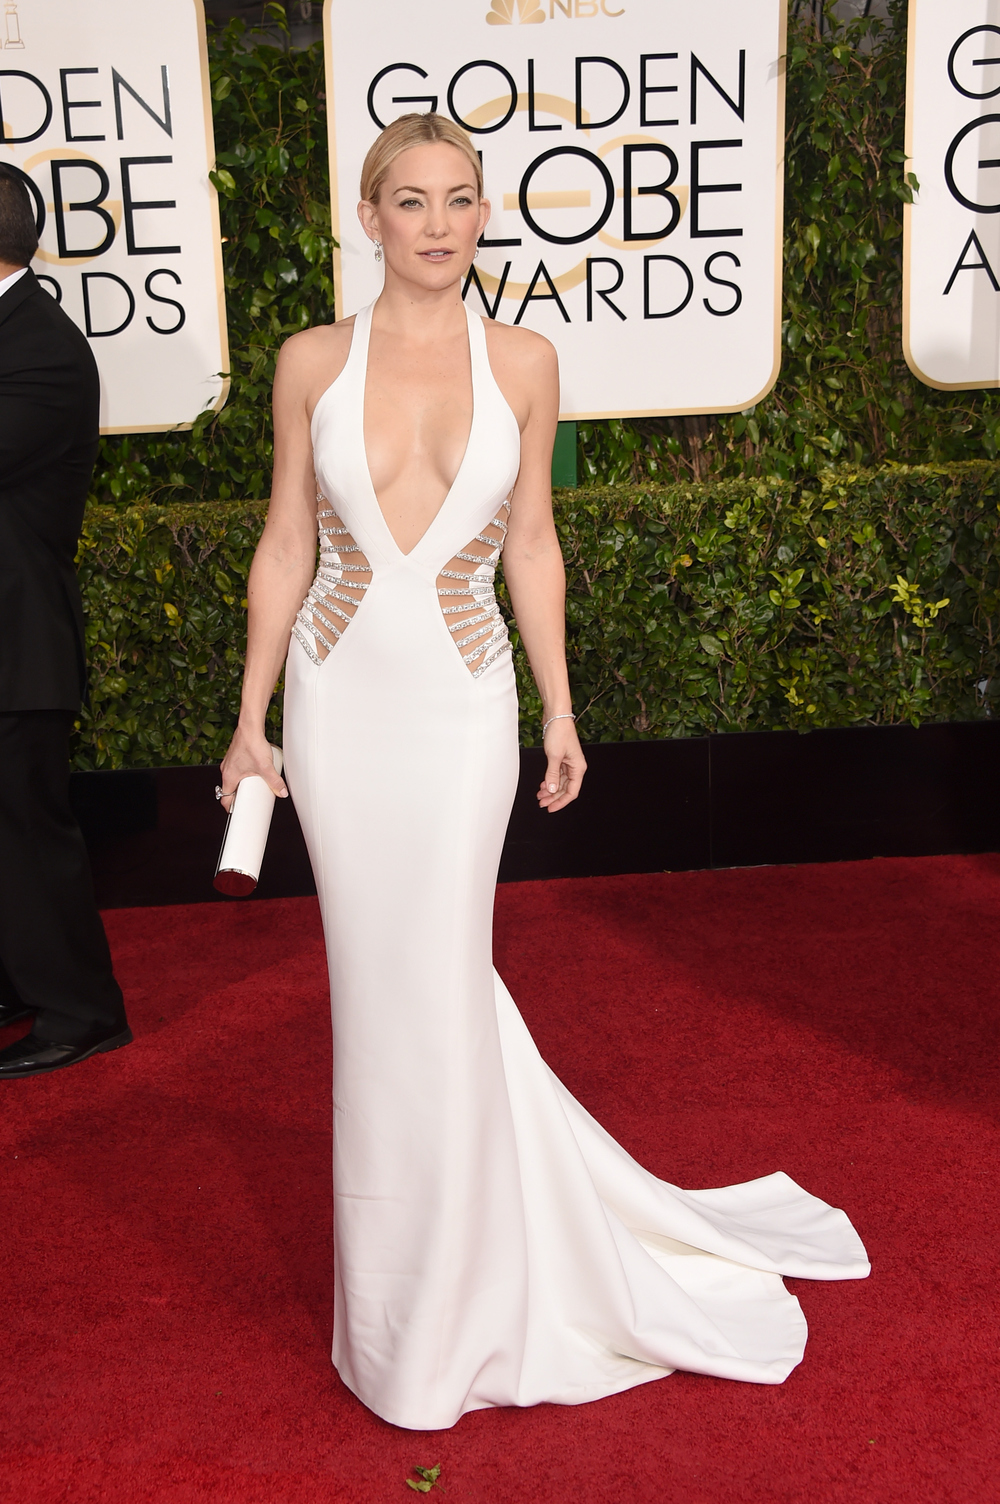 kate-hudson-golden-globes-2015-461363232